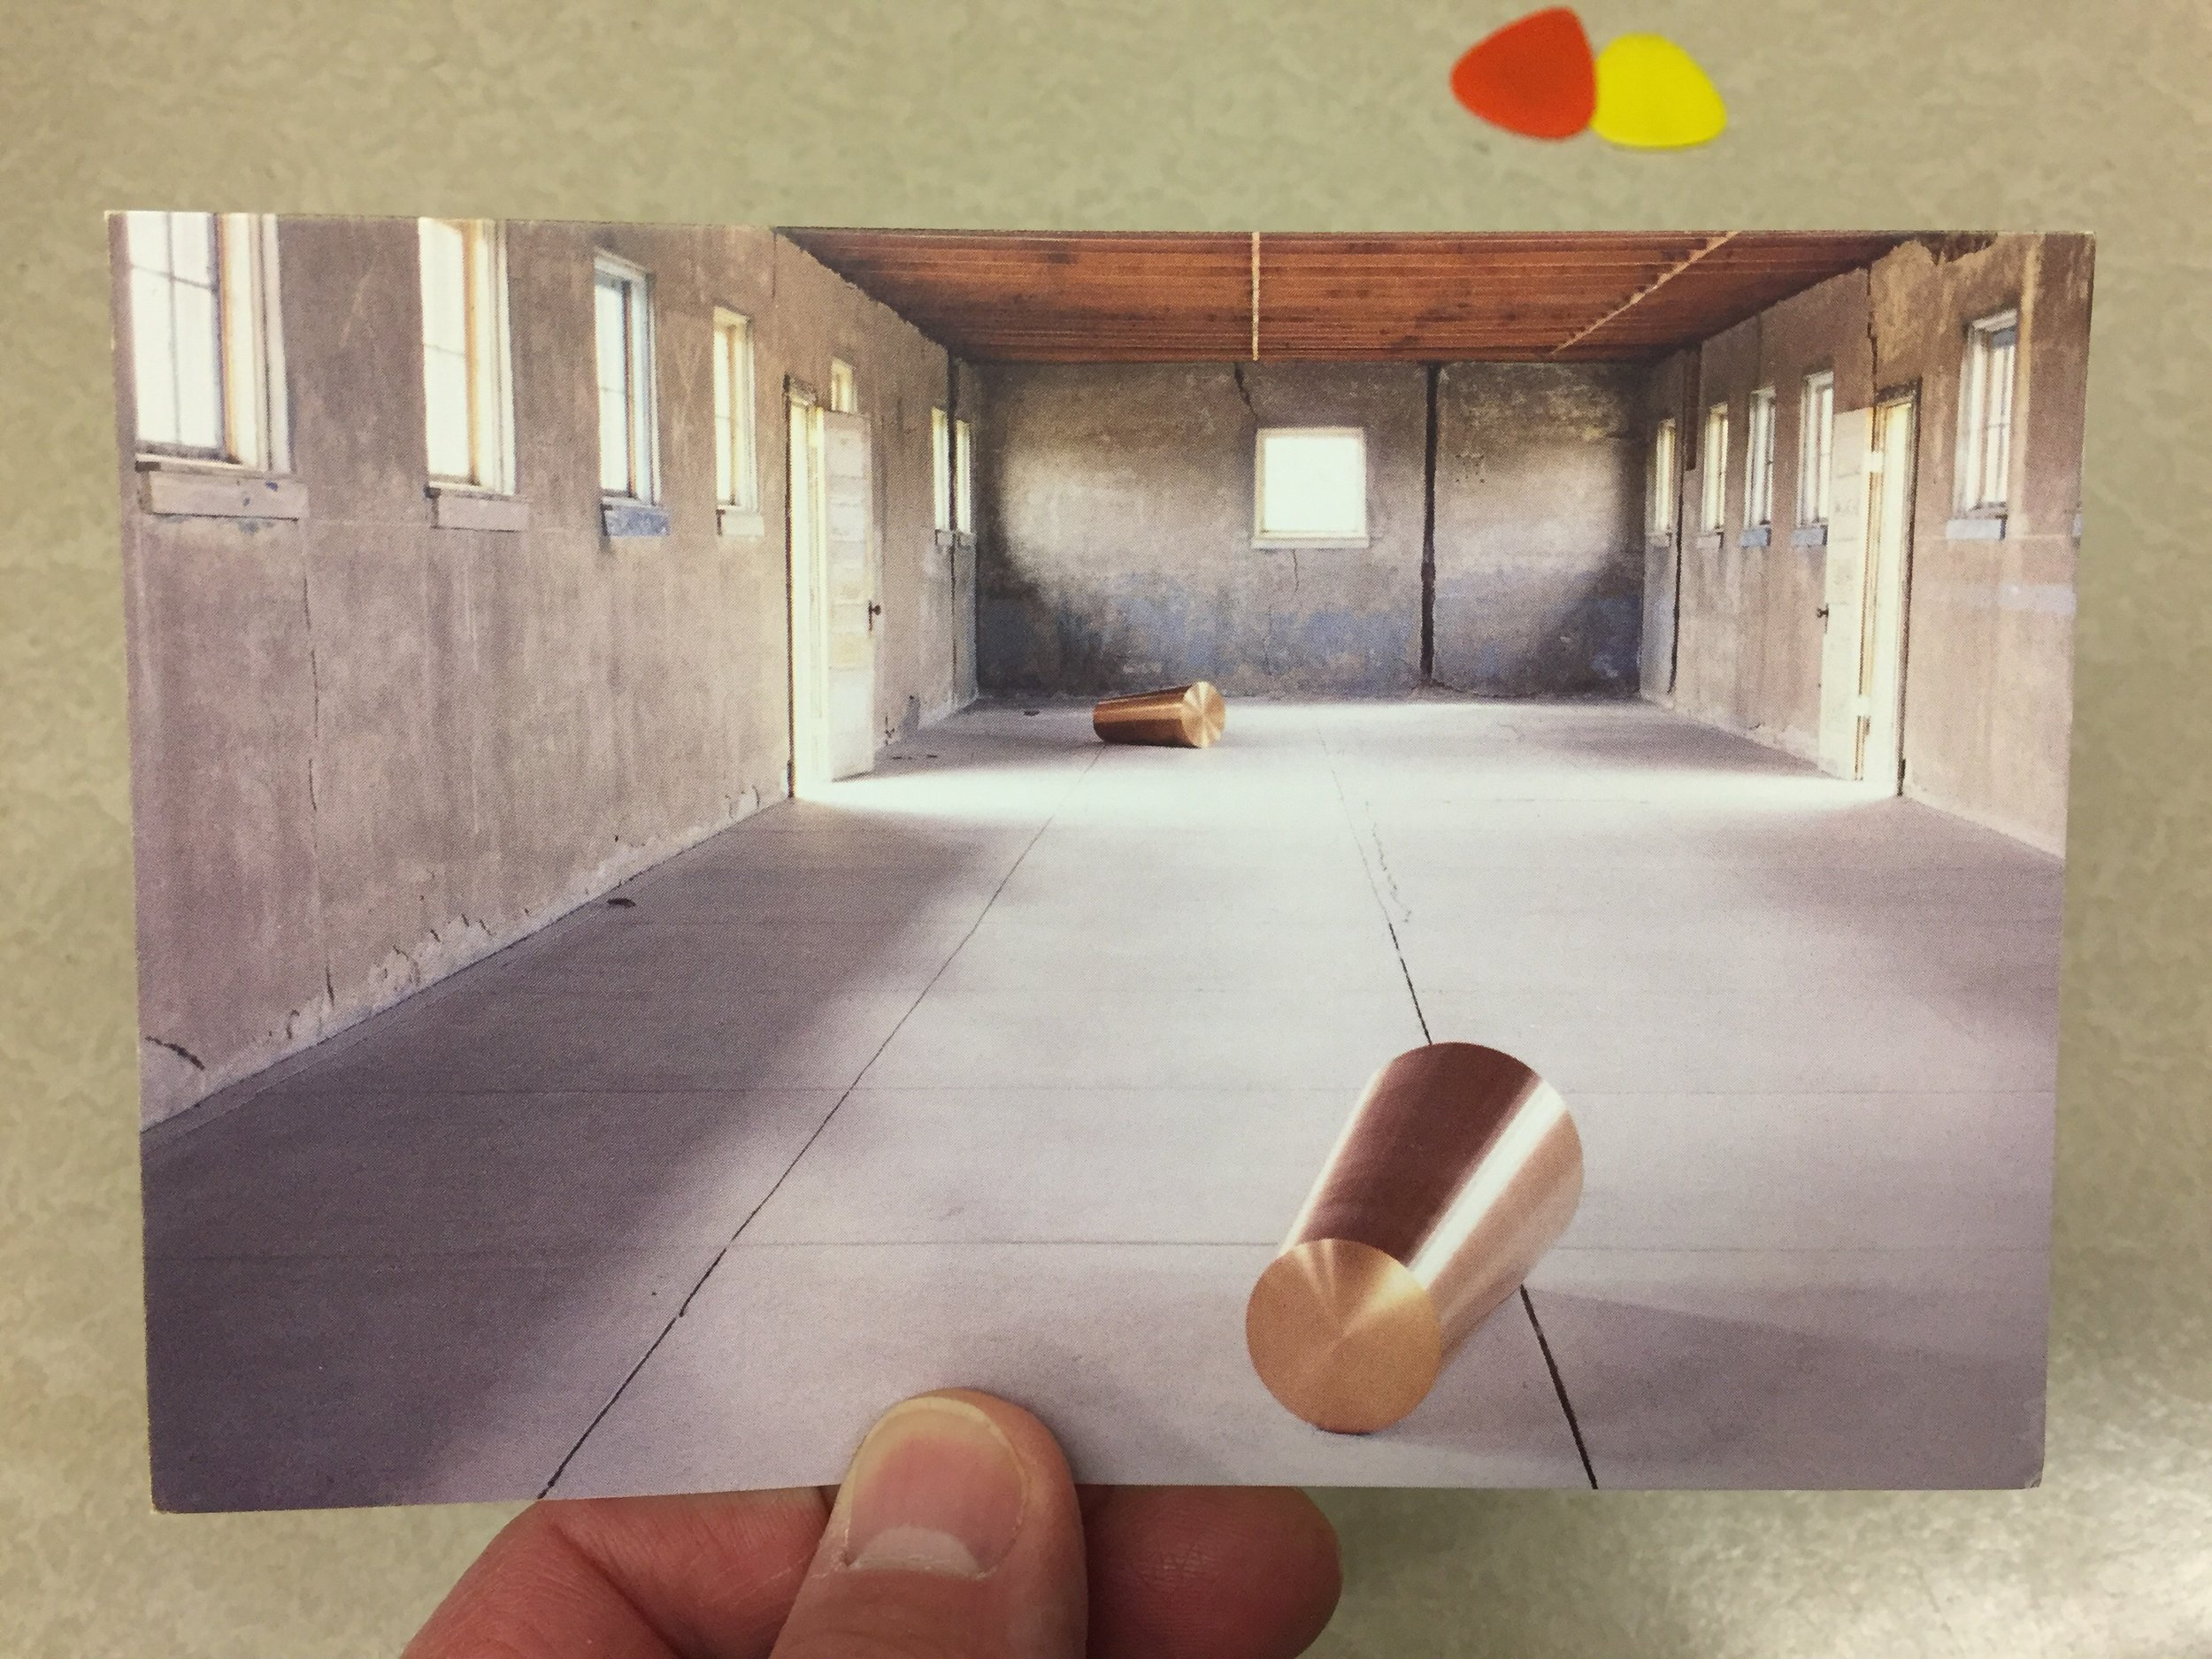 Roni Horn, Things That Happen Again; For a Here and a There, 1986-1991. Shot off a postcard from the Chinati Foundation gift shop, as I exited.